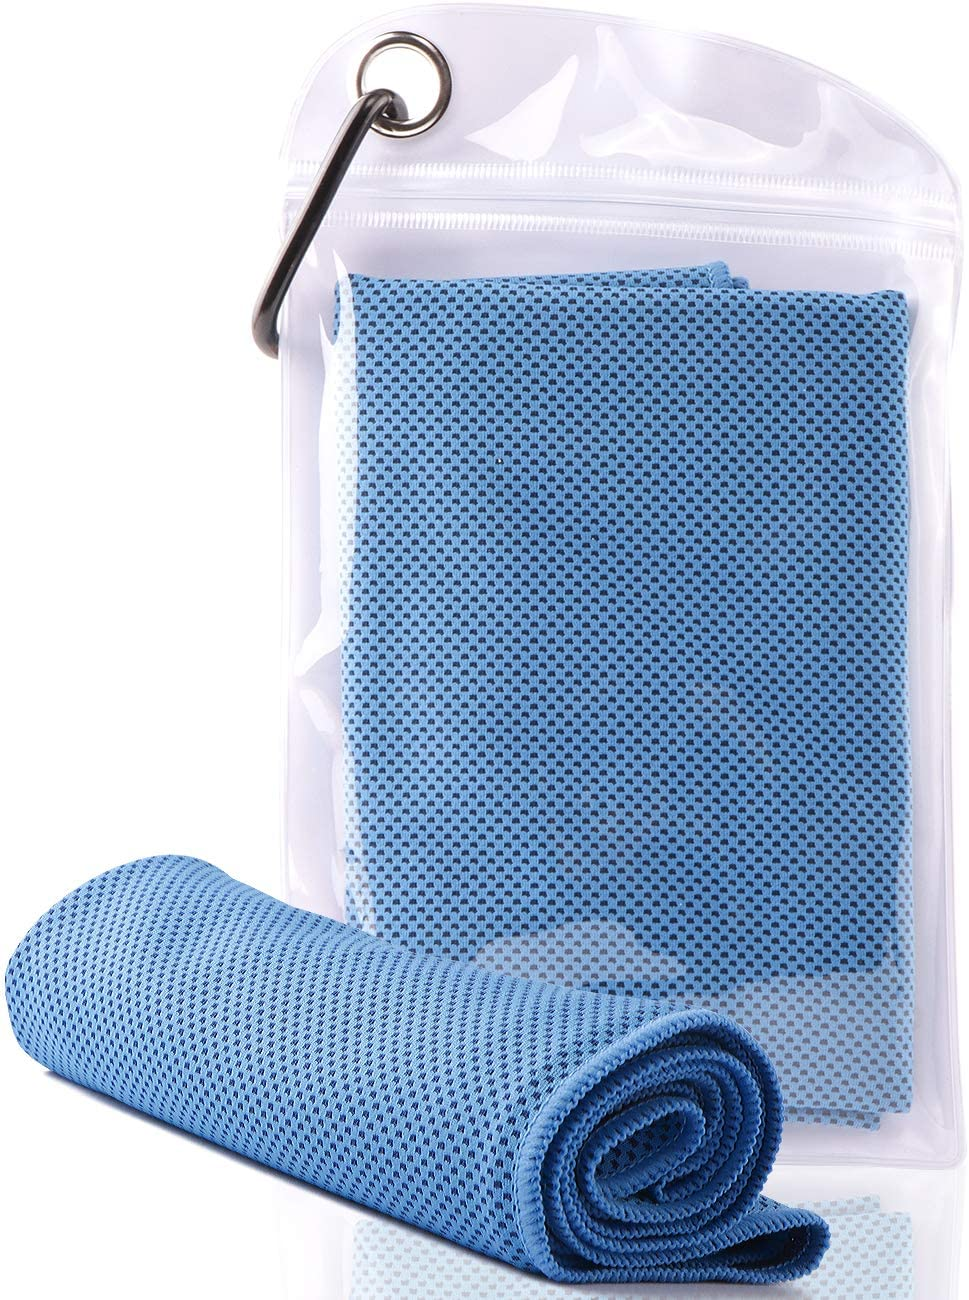 Cooling Towel - Chilly Microfiber Towel Ice Neck Wrap for Athletes Workout Sport Yoga Fast Dry